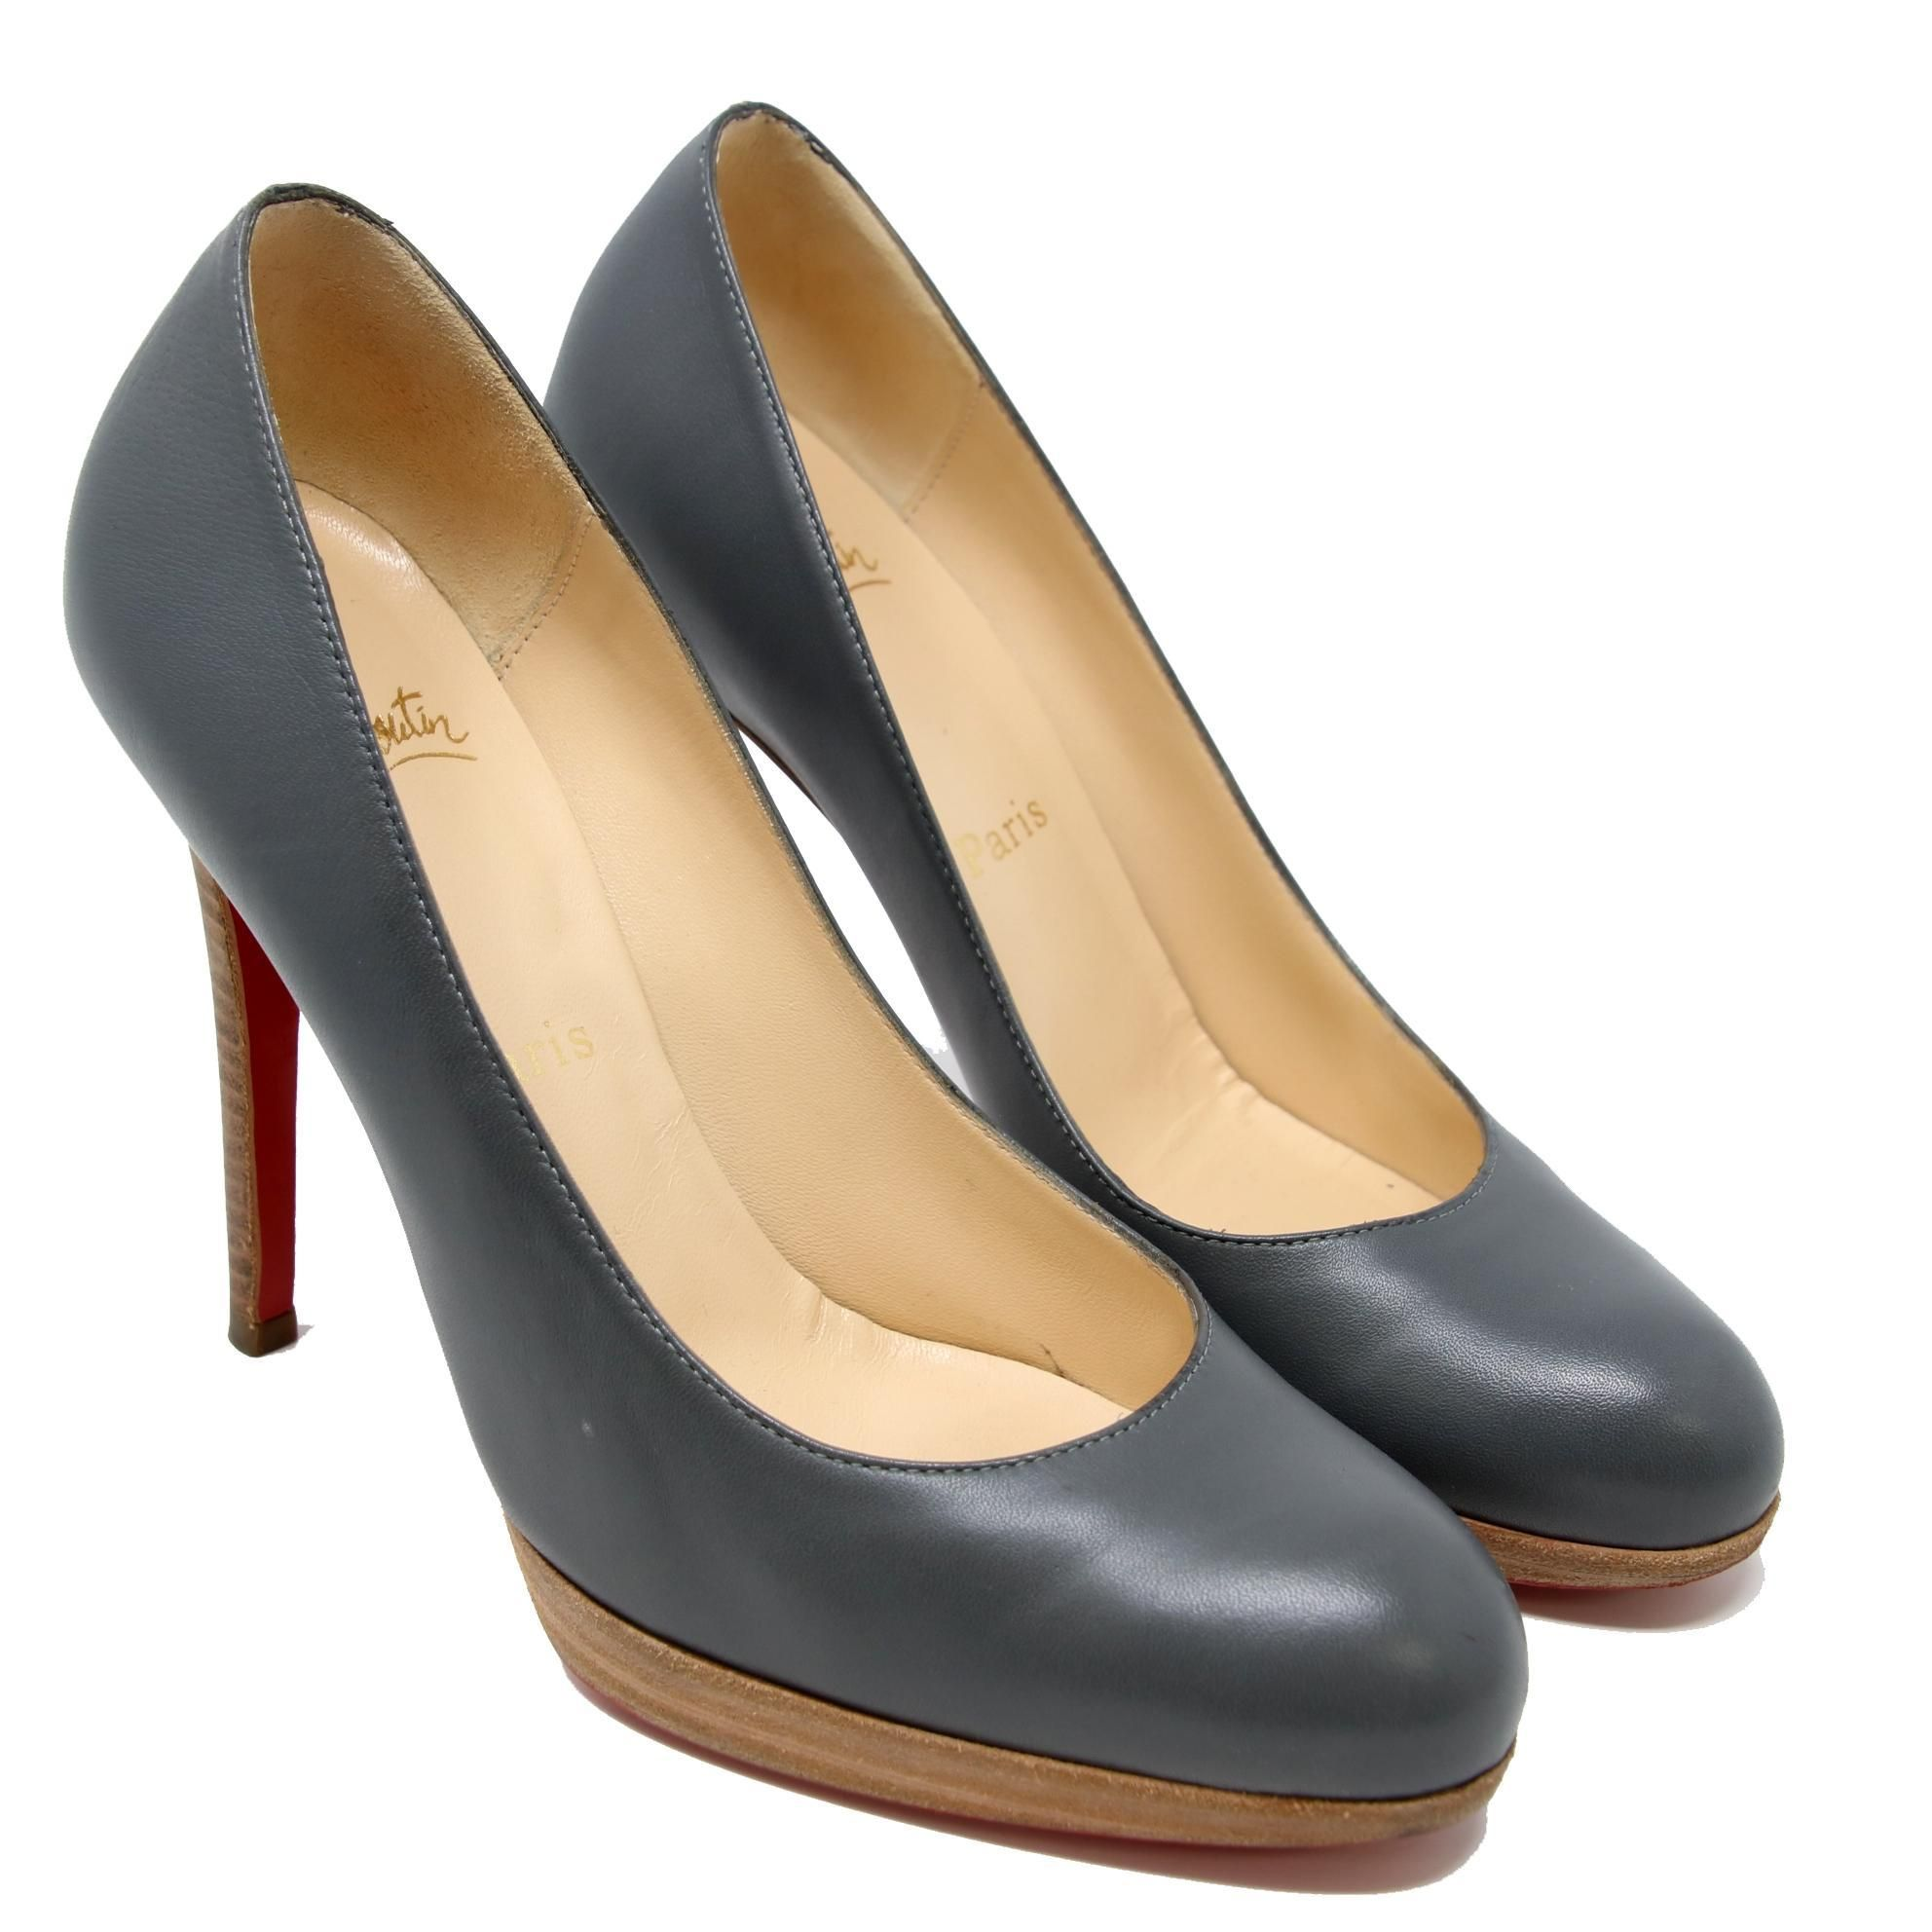 90509fb8b9 ... norway christian louboutin grey signature kid capretto decollete 868  style 120 sz. 38.5 8.5 us